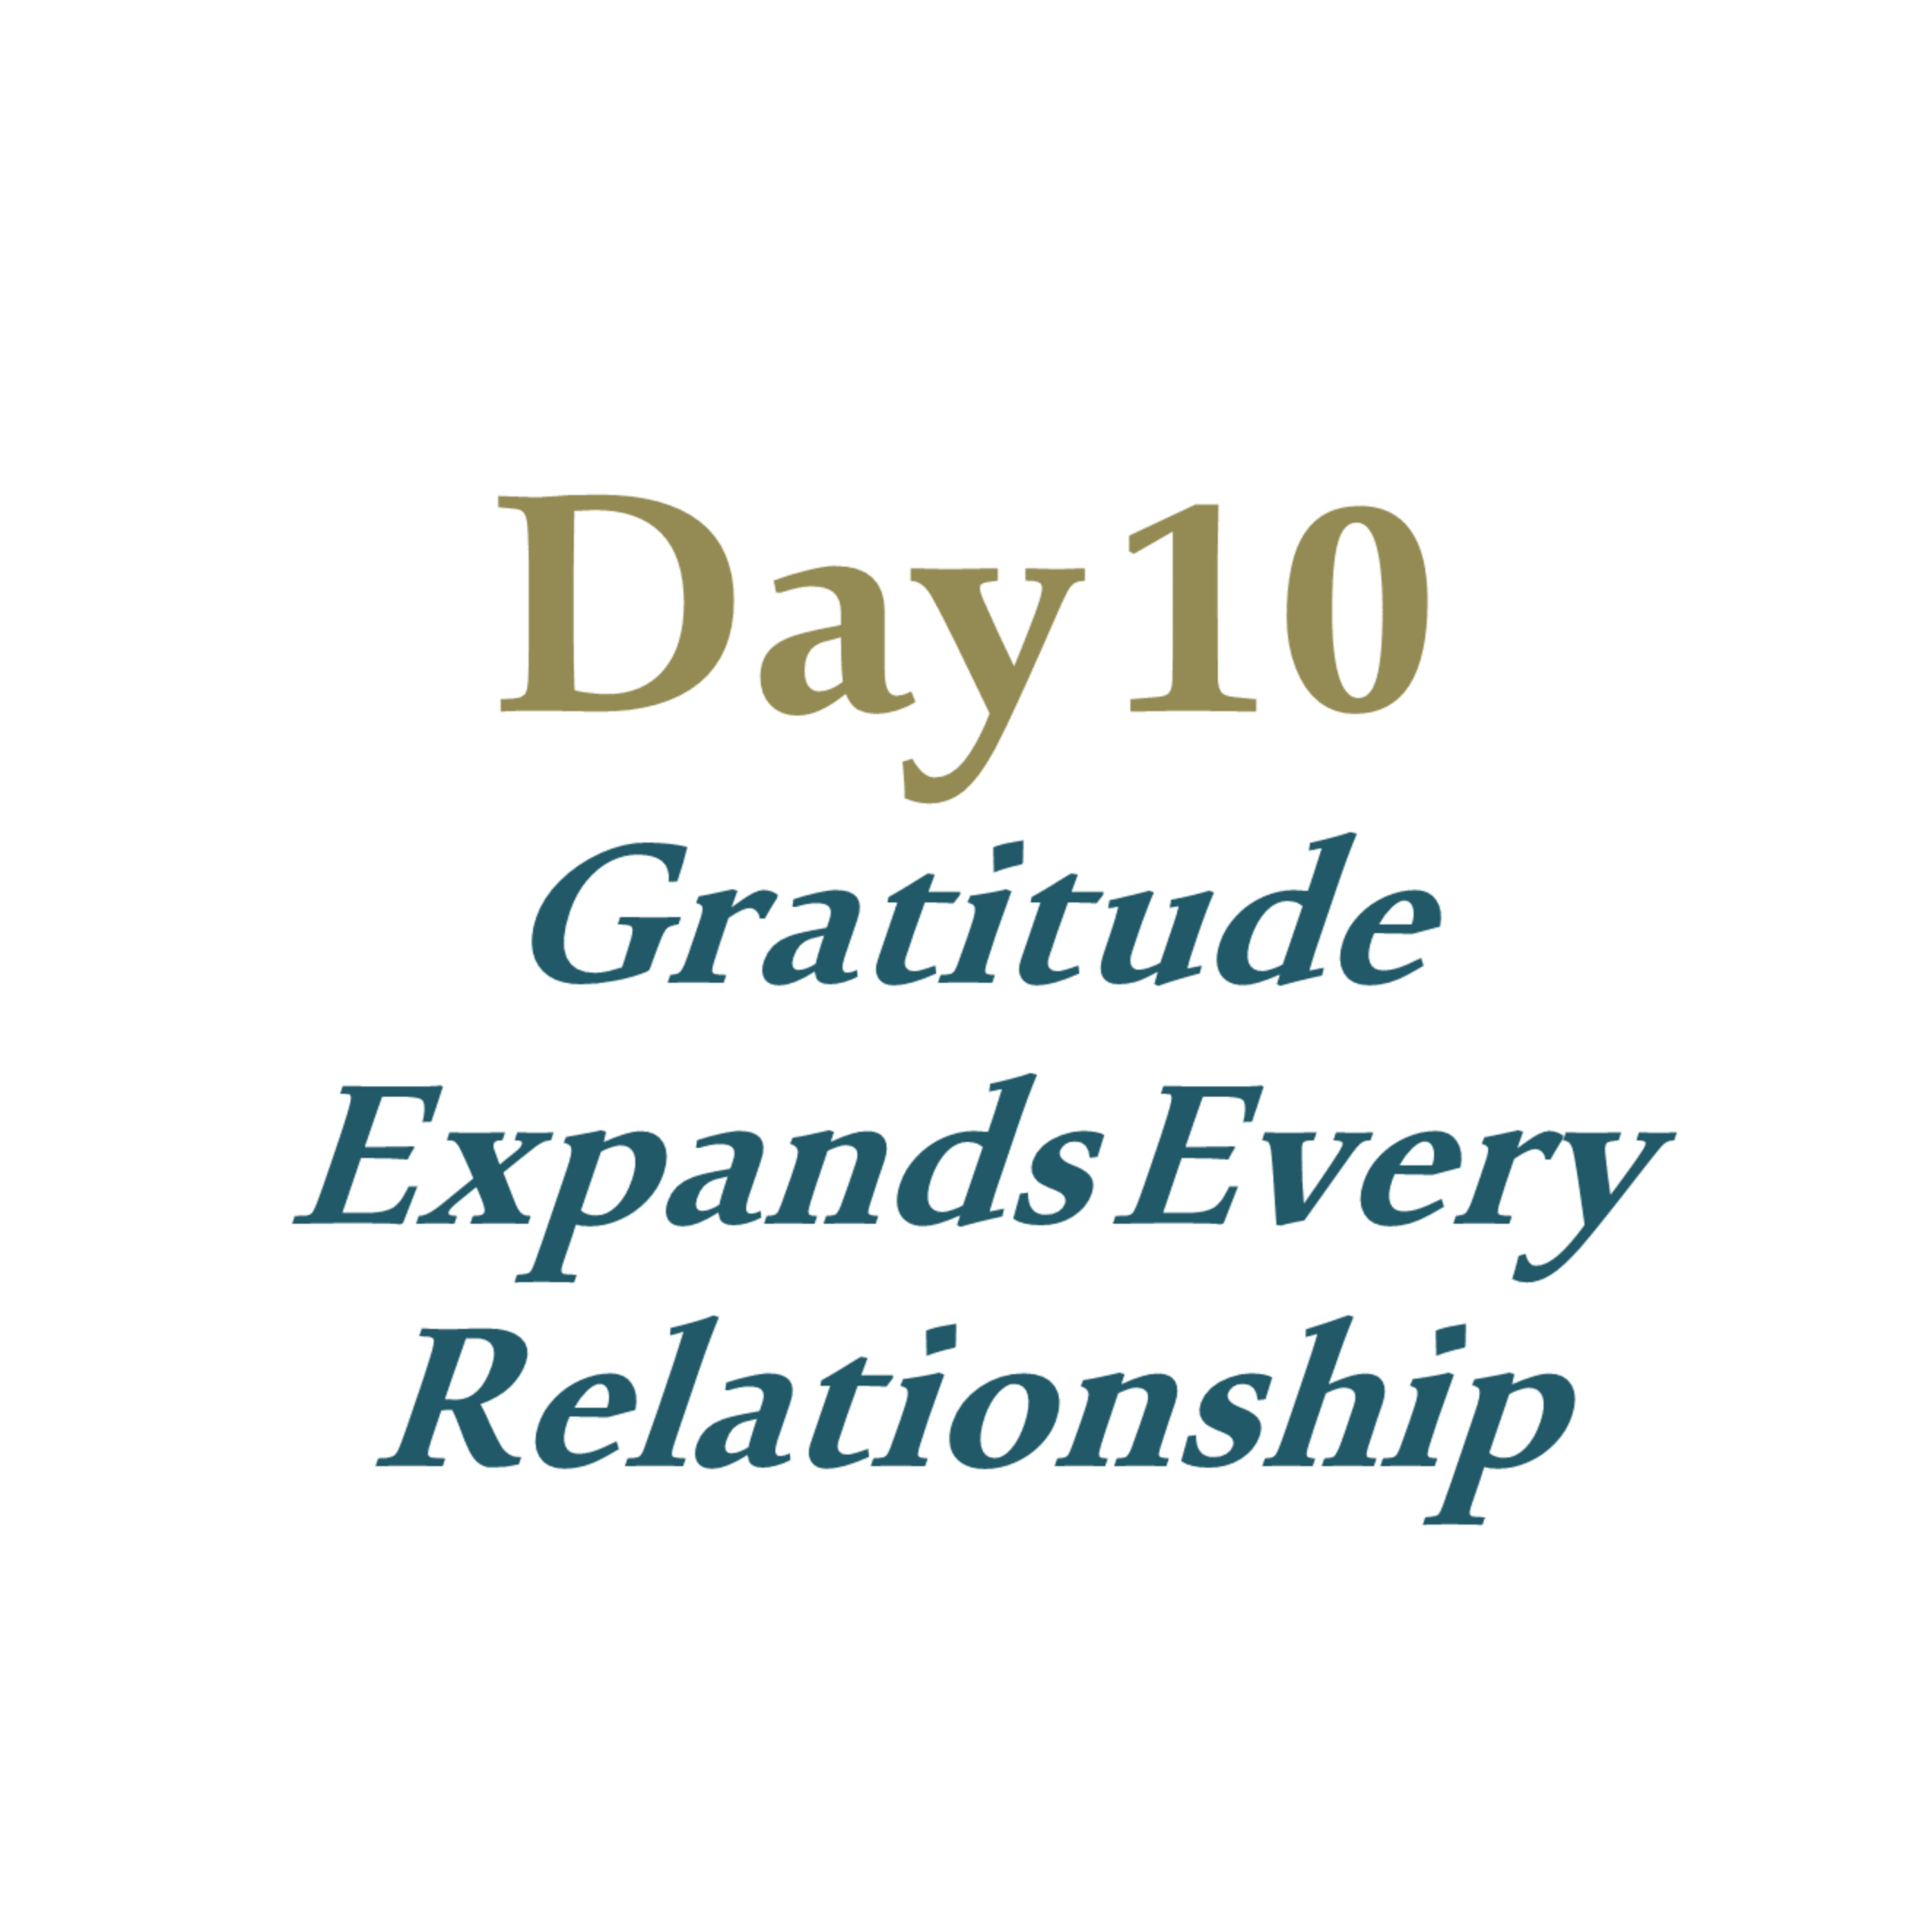 Day 10 - Gratitude Expands Every Relationship